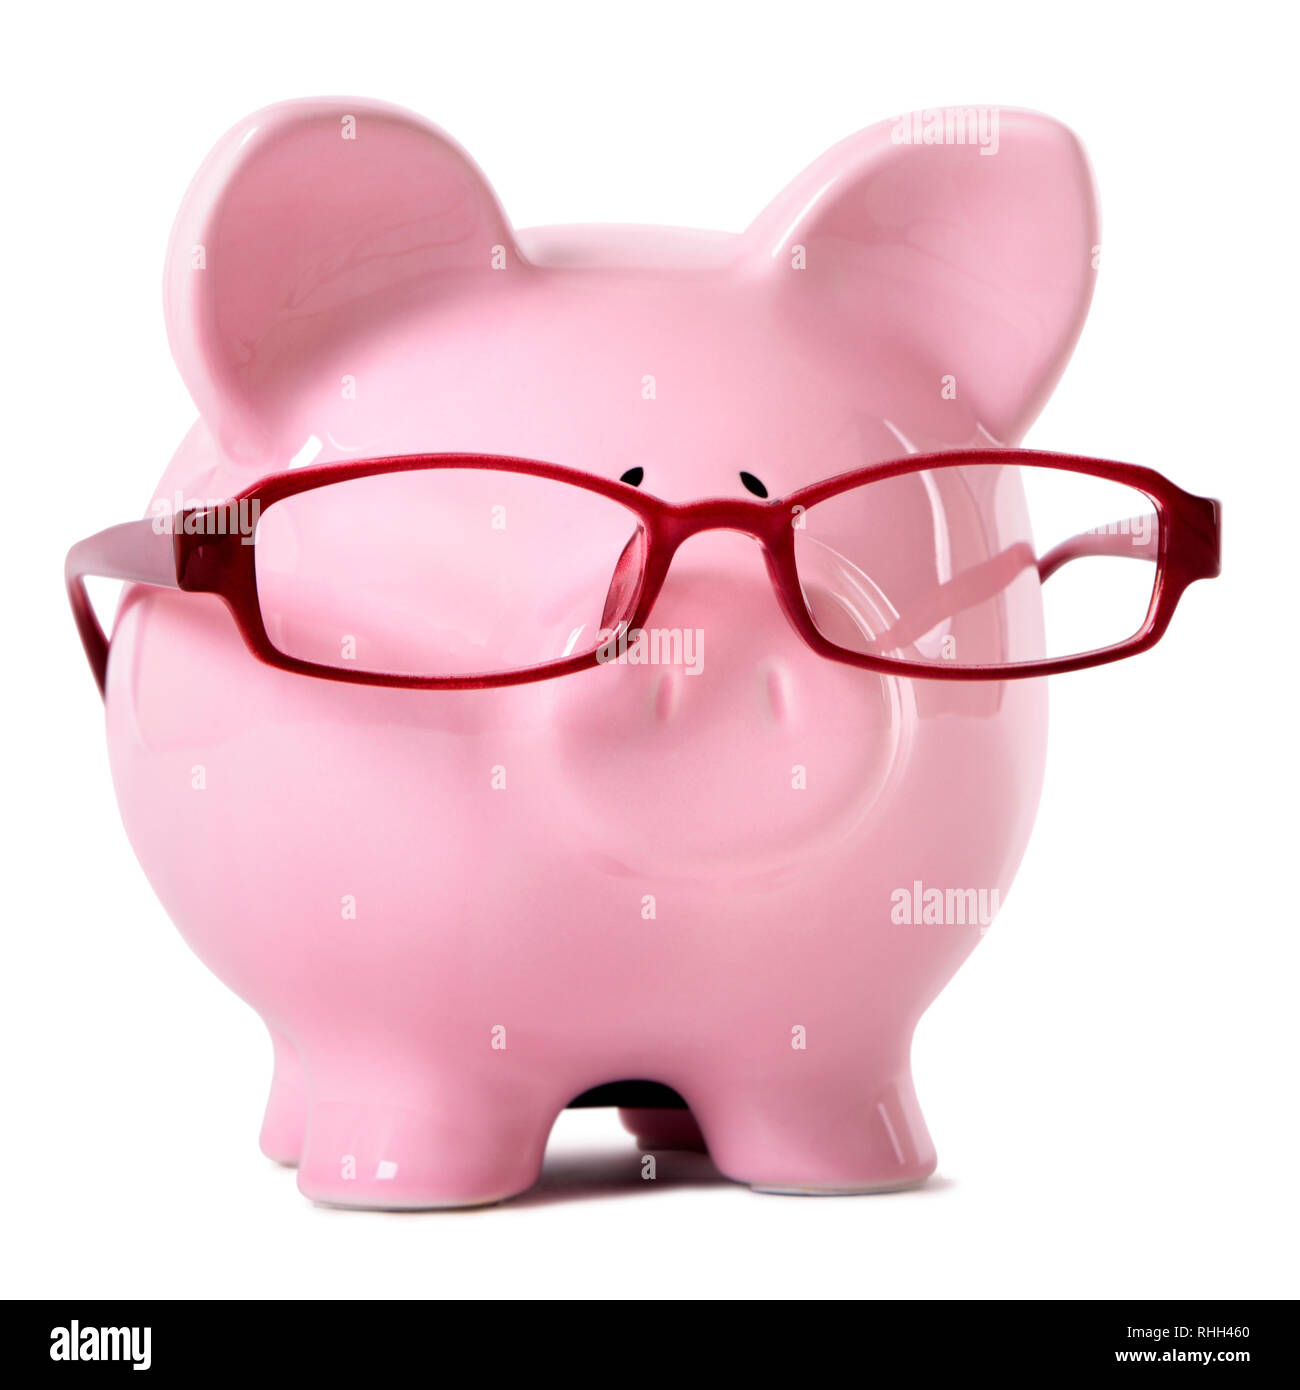 Pink piggy bank wearing glasses - Stock Image